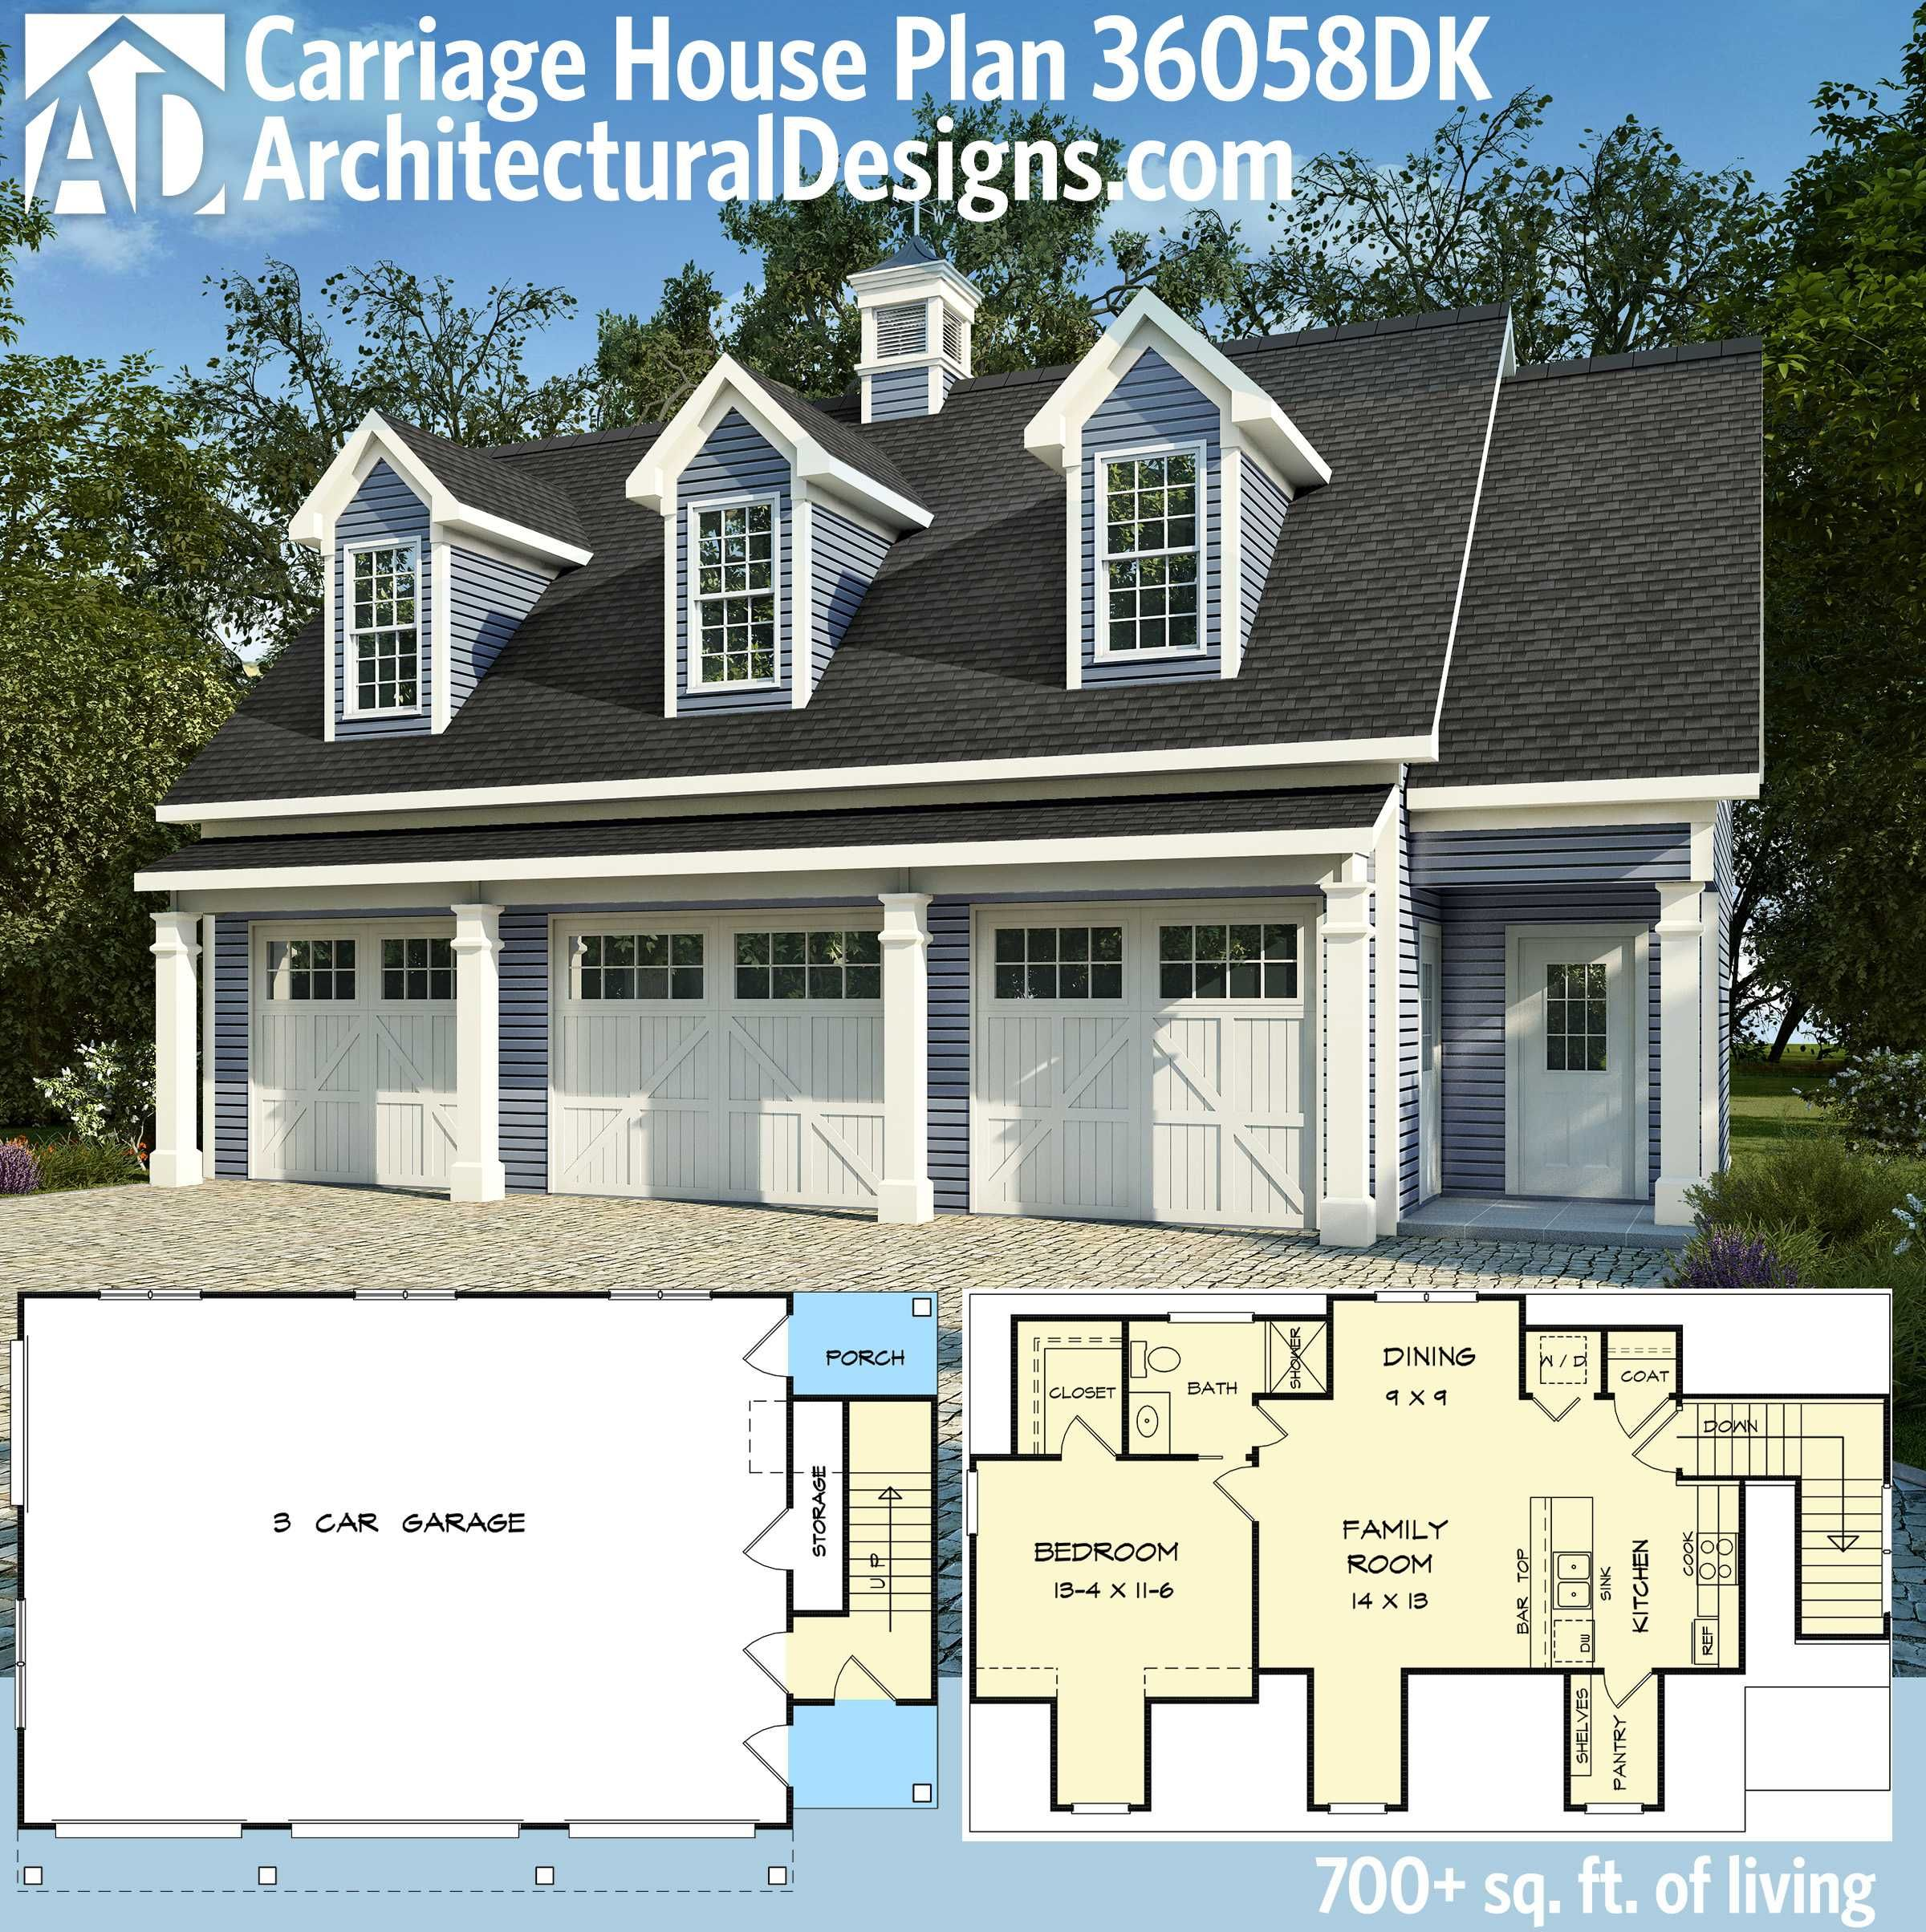 Carriage House Plans Cost To Build Carriage House Plans Garage Apartment Plans Garage Apartment Floor Plans